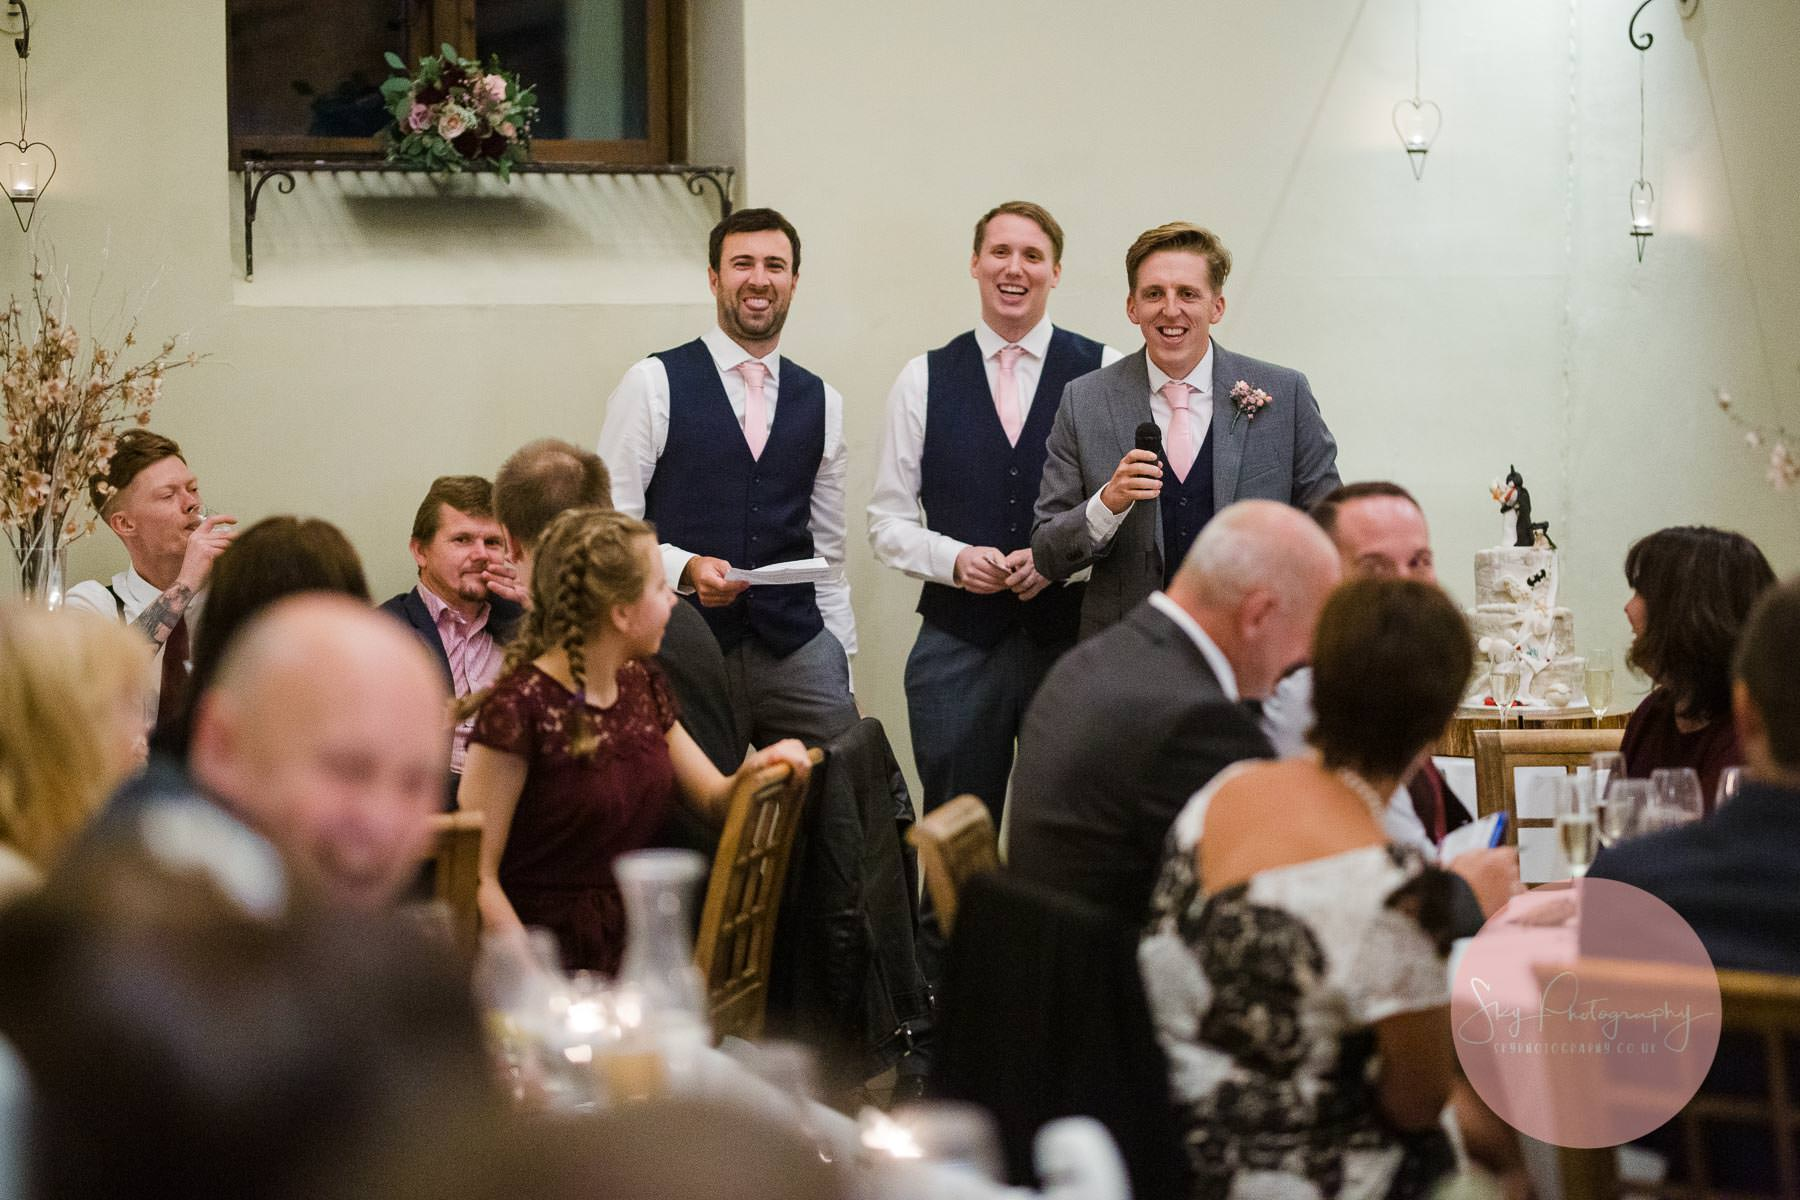 The best men performing their speech before the wedding guests at Dodmoor House